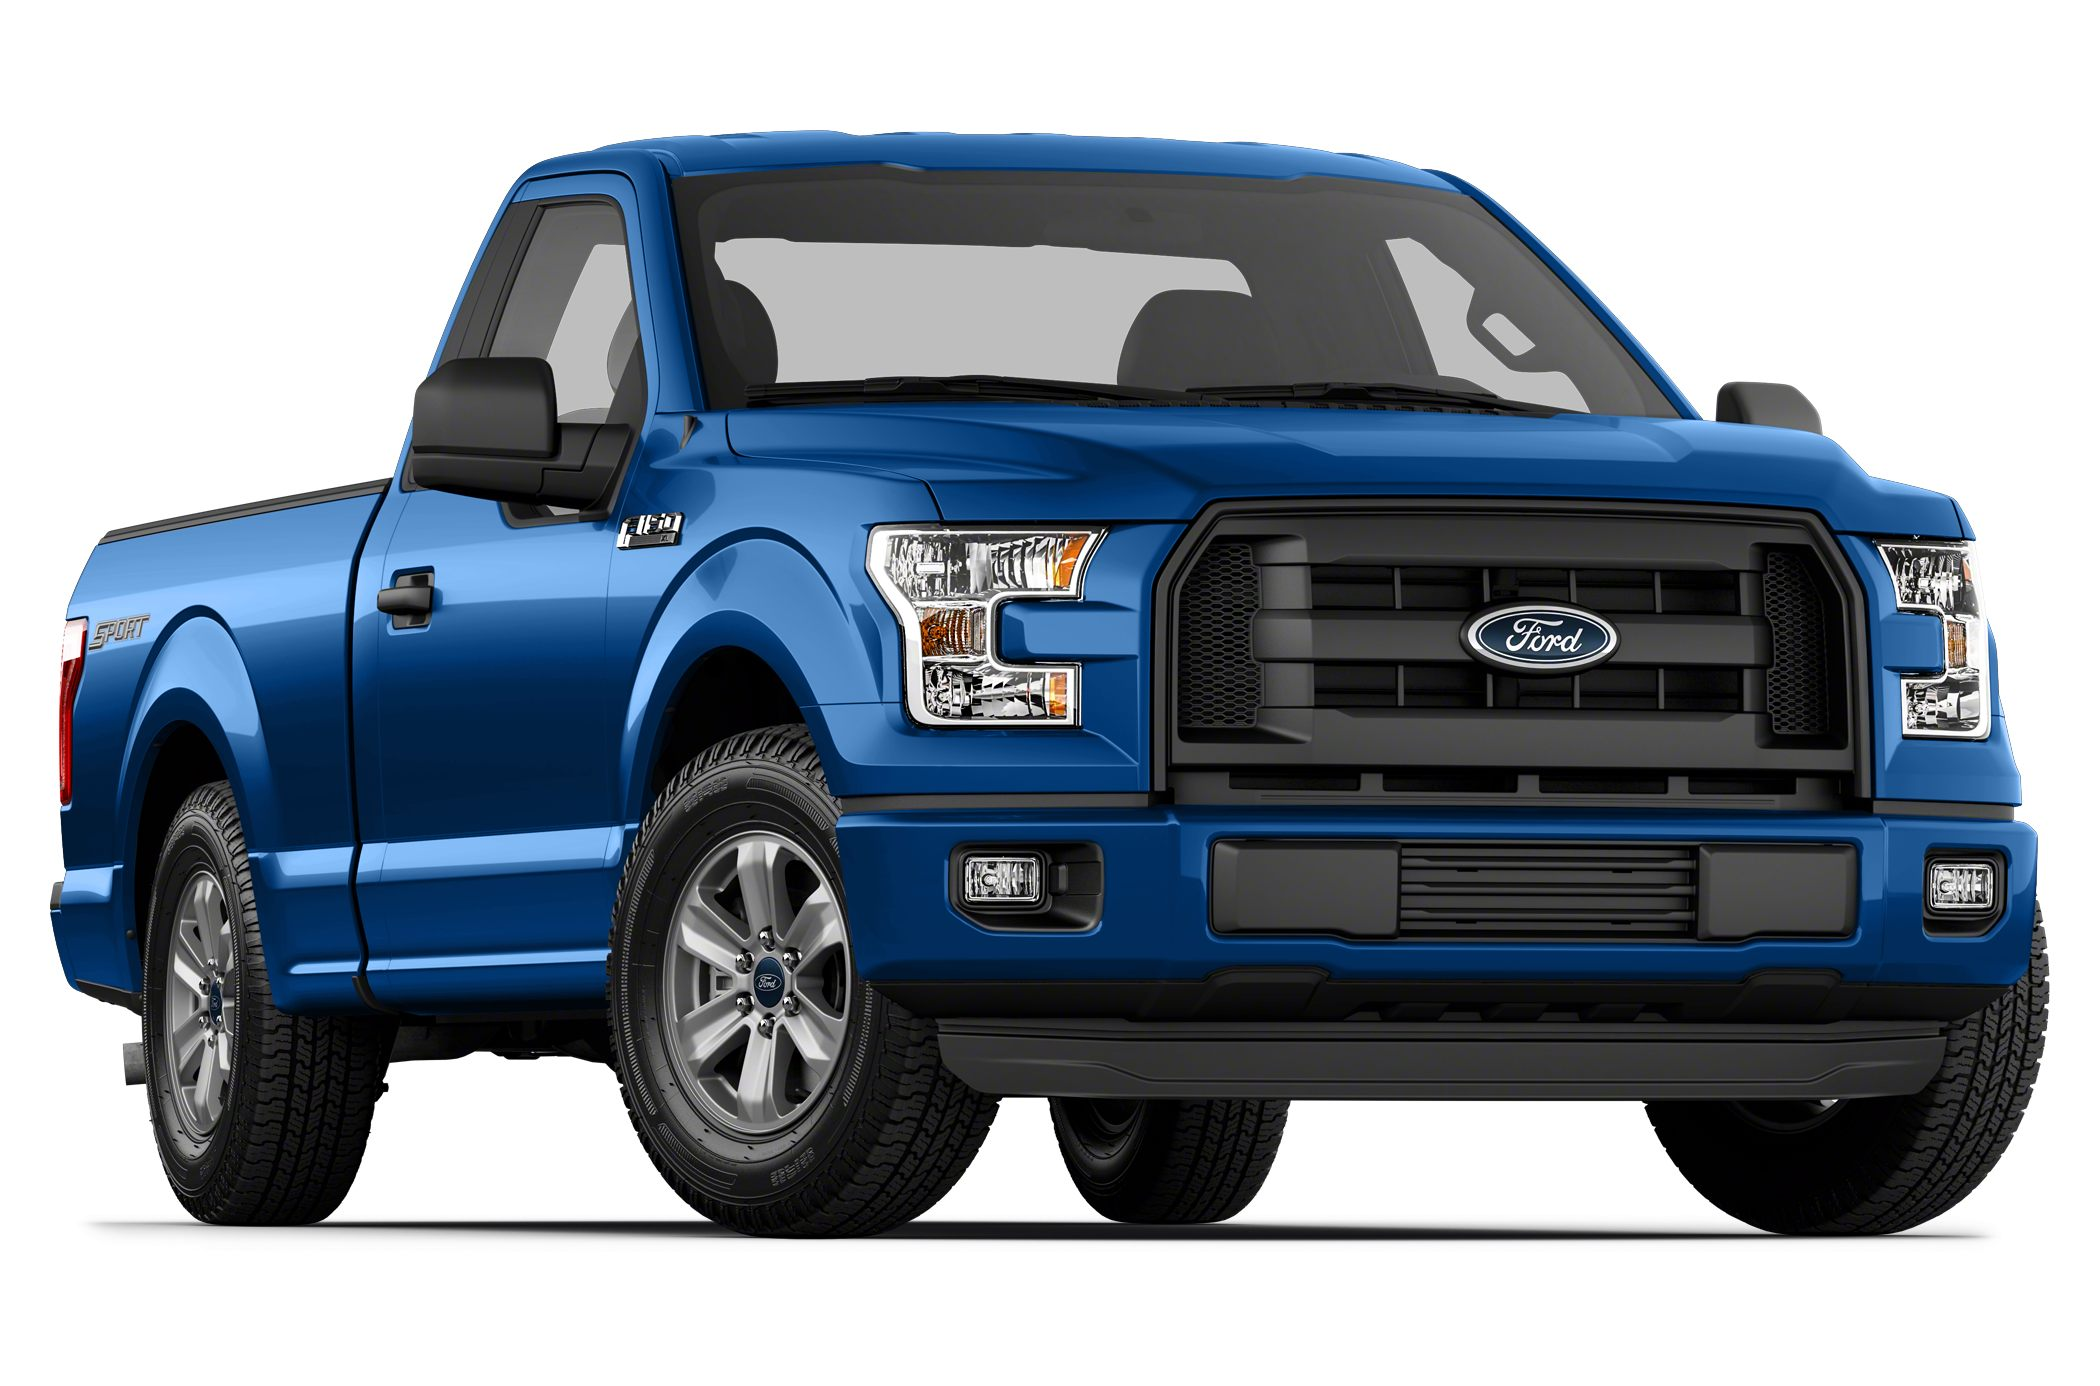 2015 Ford F150 XLT Crew Cab Pickup for sale in Barnwell for $37,617 with 2 miles